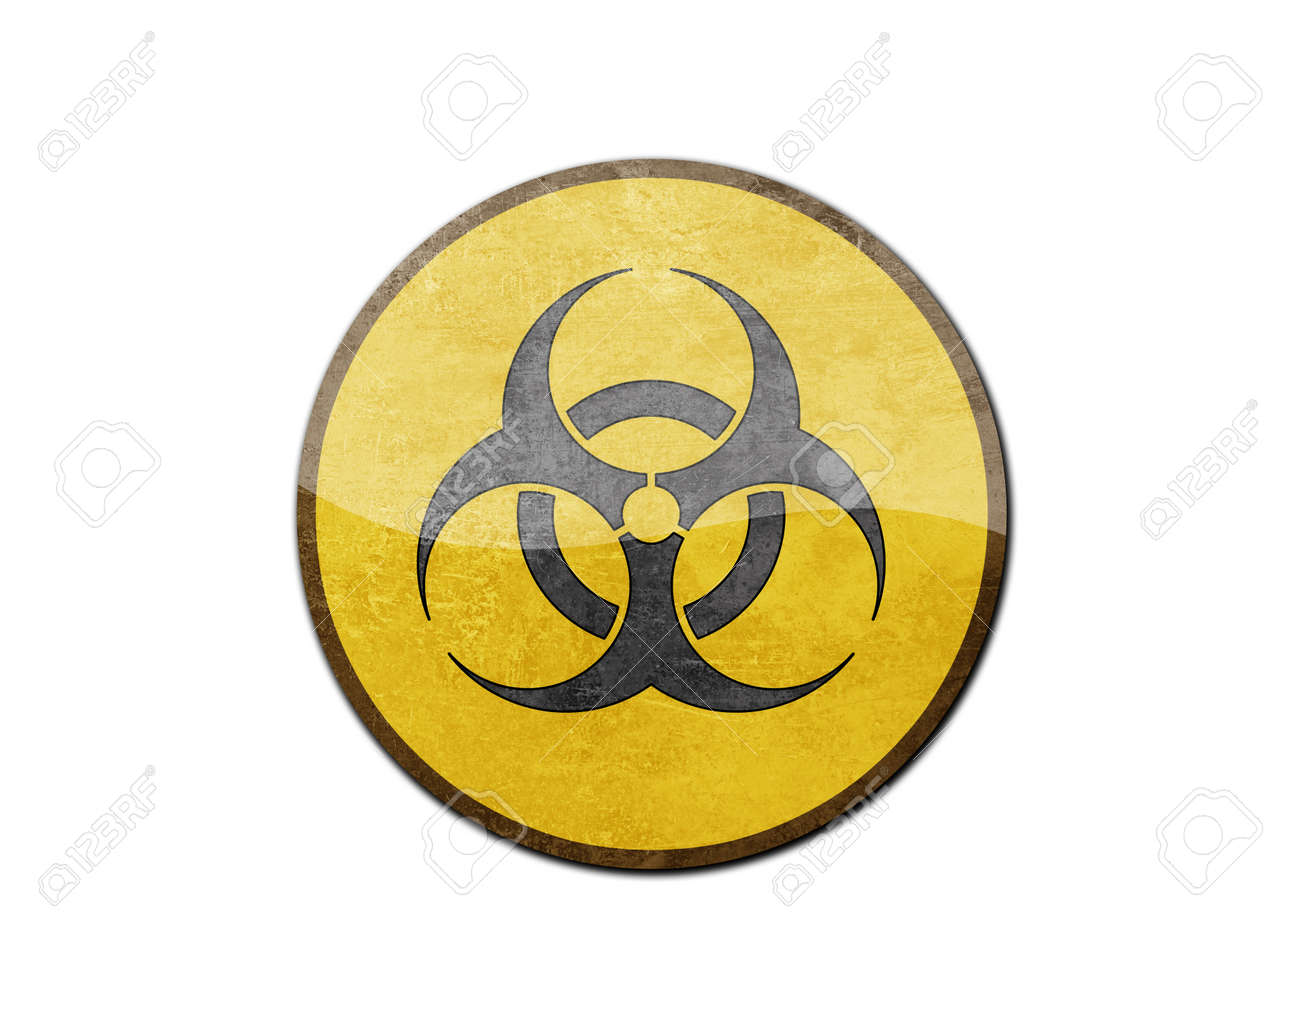 Biohazard sign isolated on a white background Stock Photo - 25767271